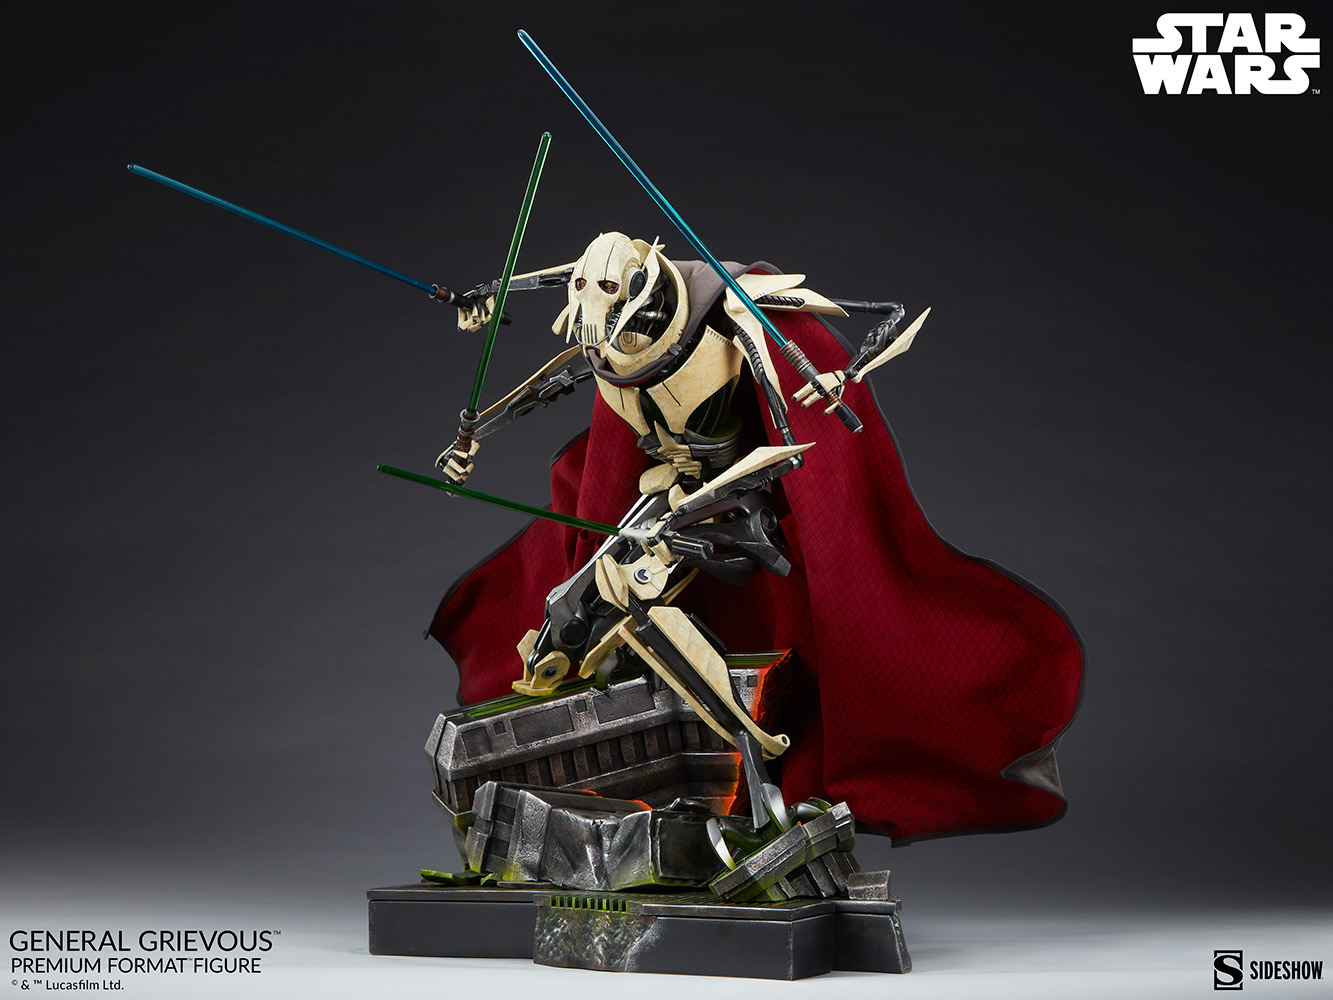 Star Wars: Revenge of the Sith : General Grievous Premium Format Figure General-grievous_star-wars_gallery_6155e6605df1e